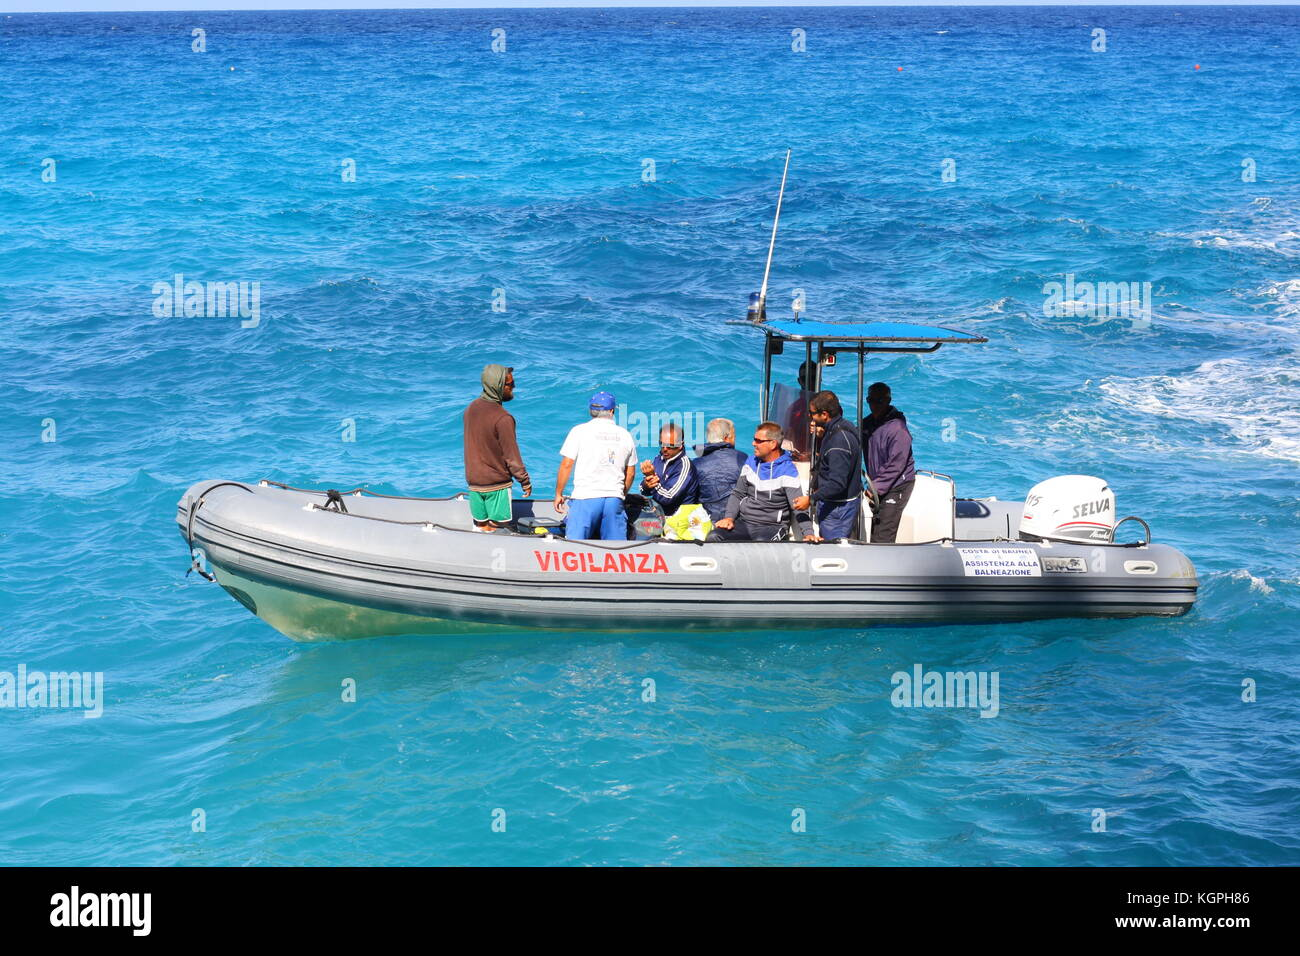 A small inflatable Vigilanza boat on blue sea water in Sardinia, Italy - Stock Image